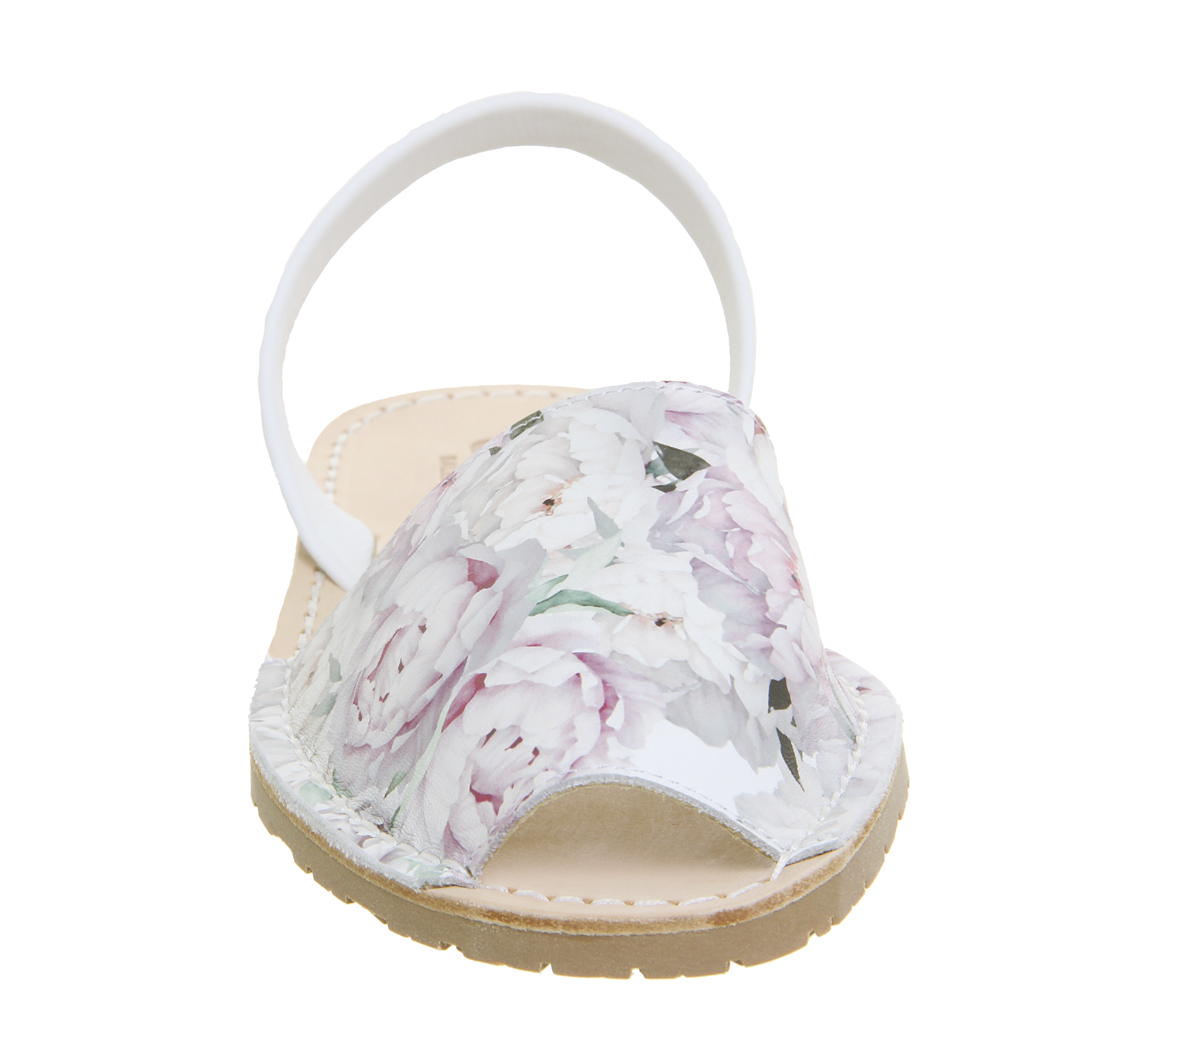 Womens-Solillas-Solillas-Sandals-Floral-Print-Sandals thumbnail 7